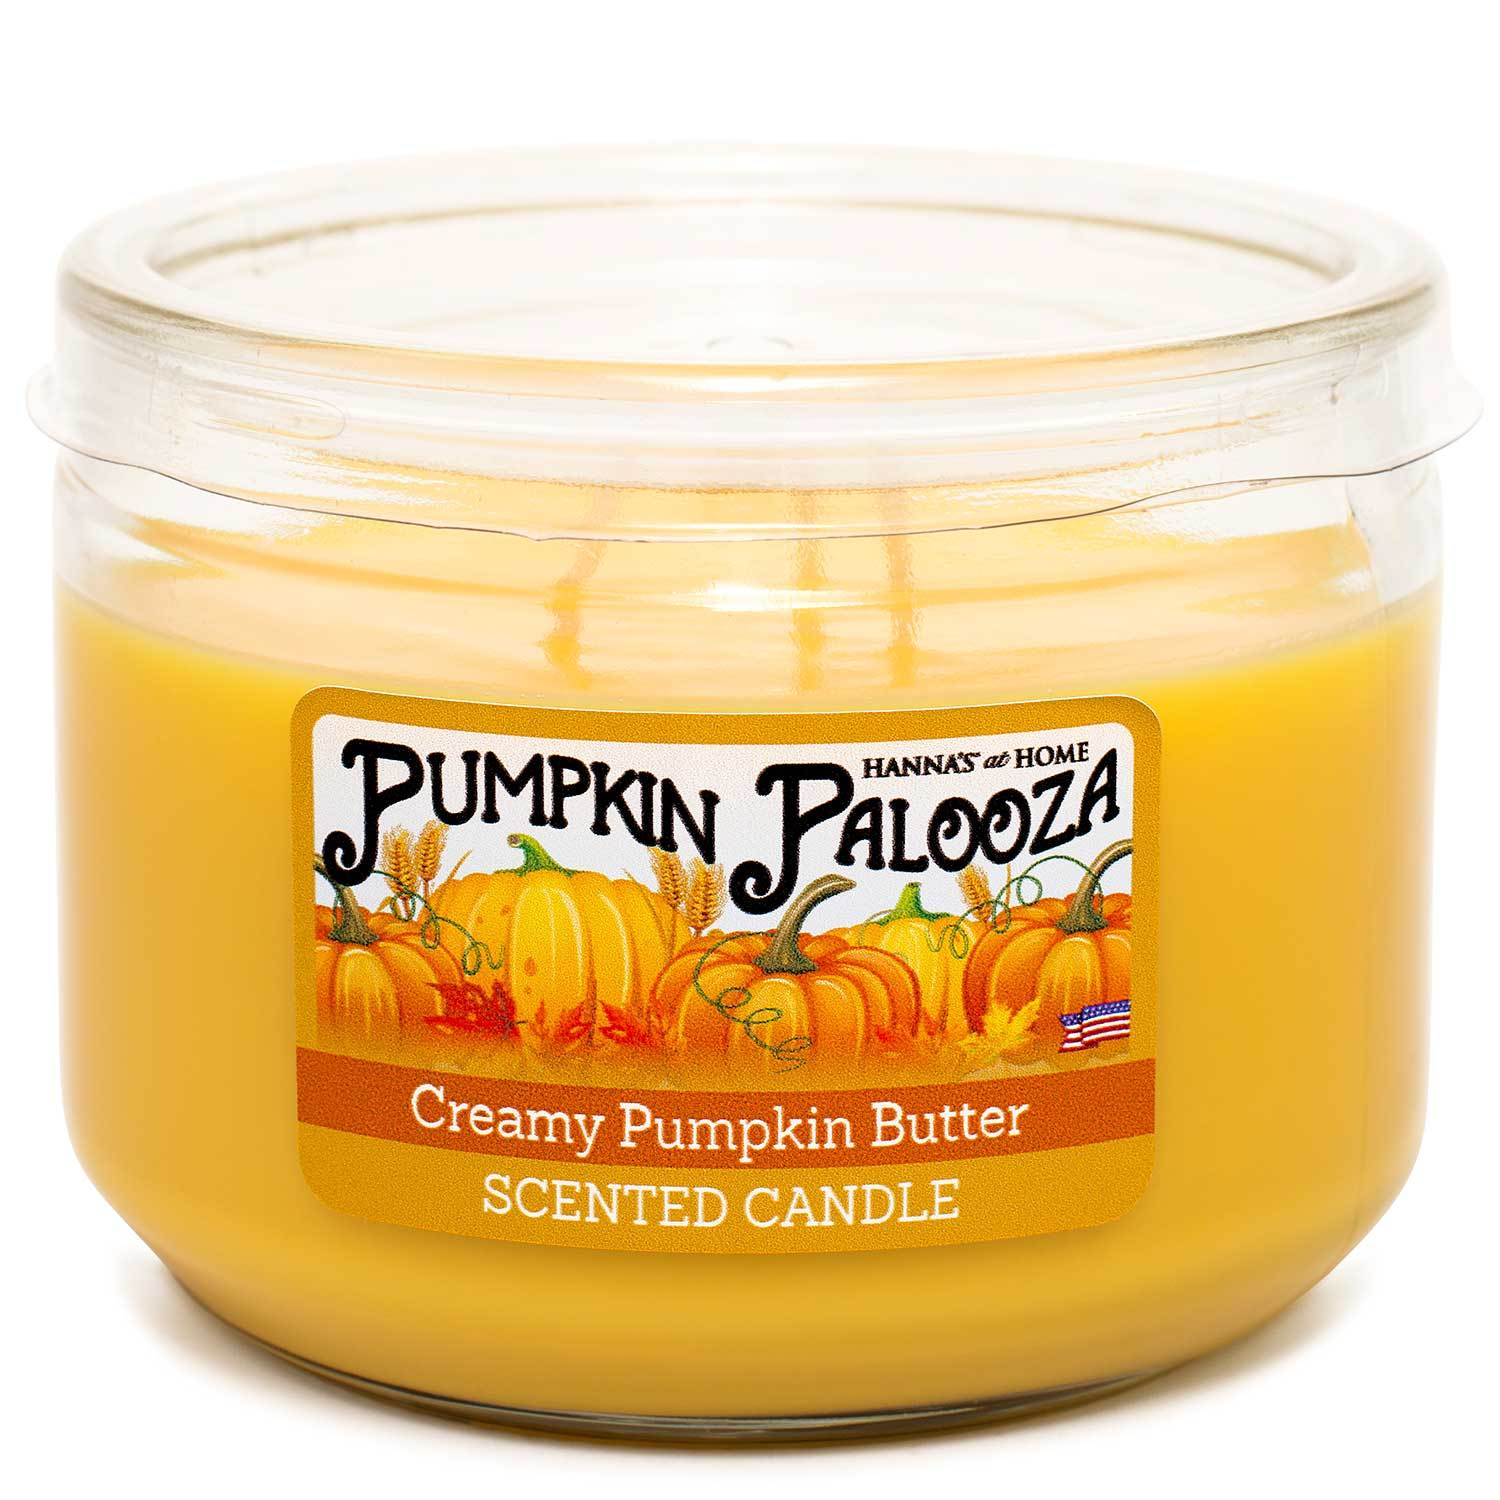 Creamy Pumpkin Butter Scented 3 wick Candle Candles Candlemart.com $ 7.99